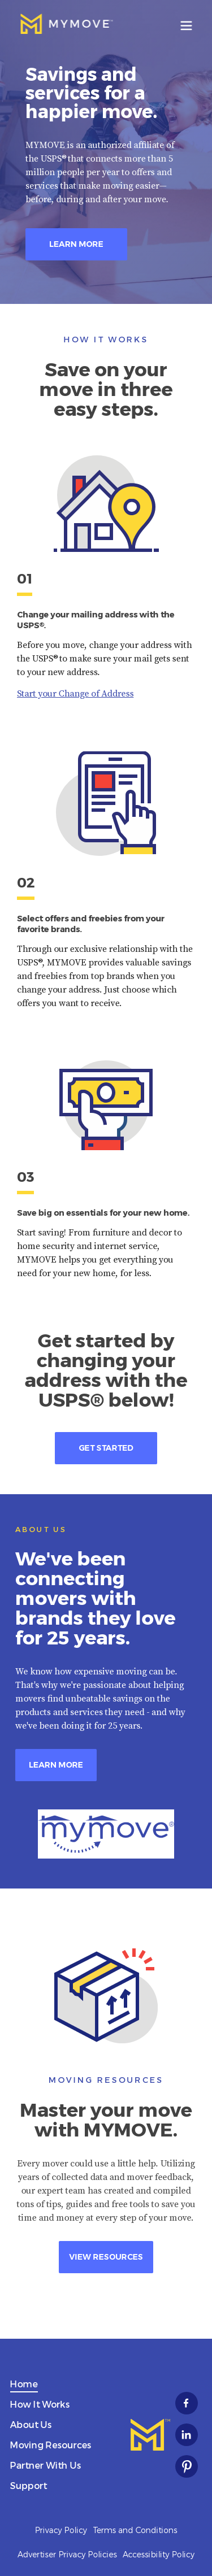 Example of Design for Business & Industrial, Transportation & Logistics, Moving & Relocation, Mobile Landing Page by mymove.com | Mobile Landing Page Design